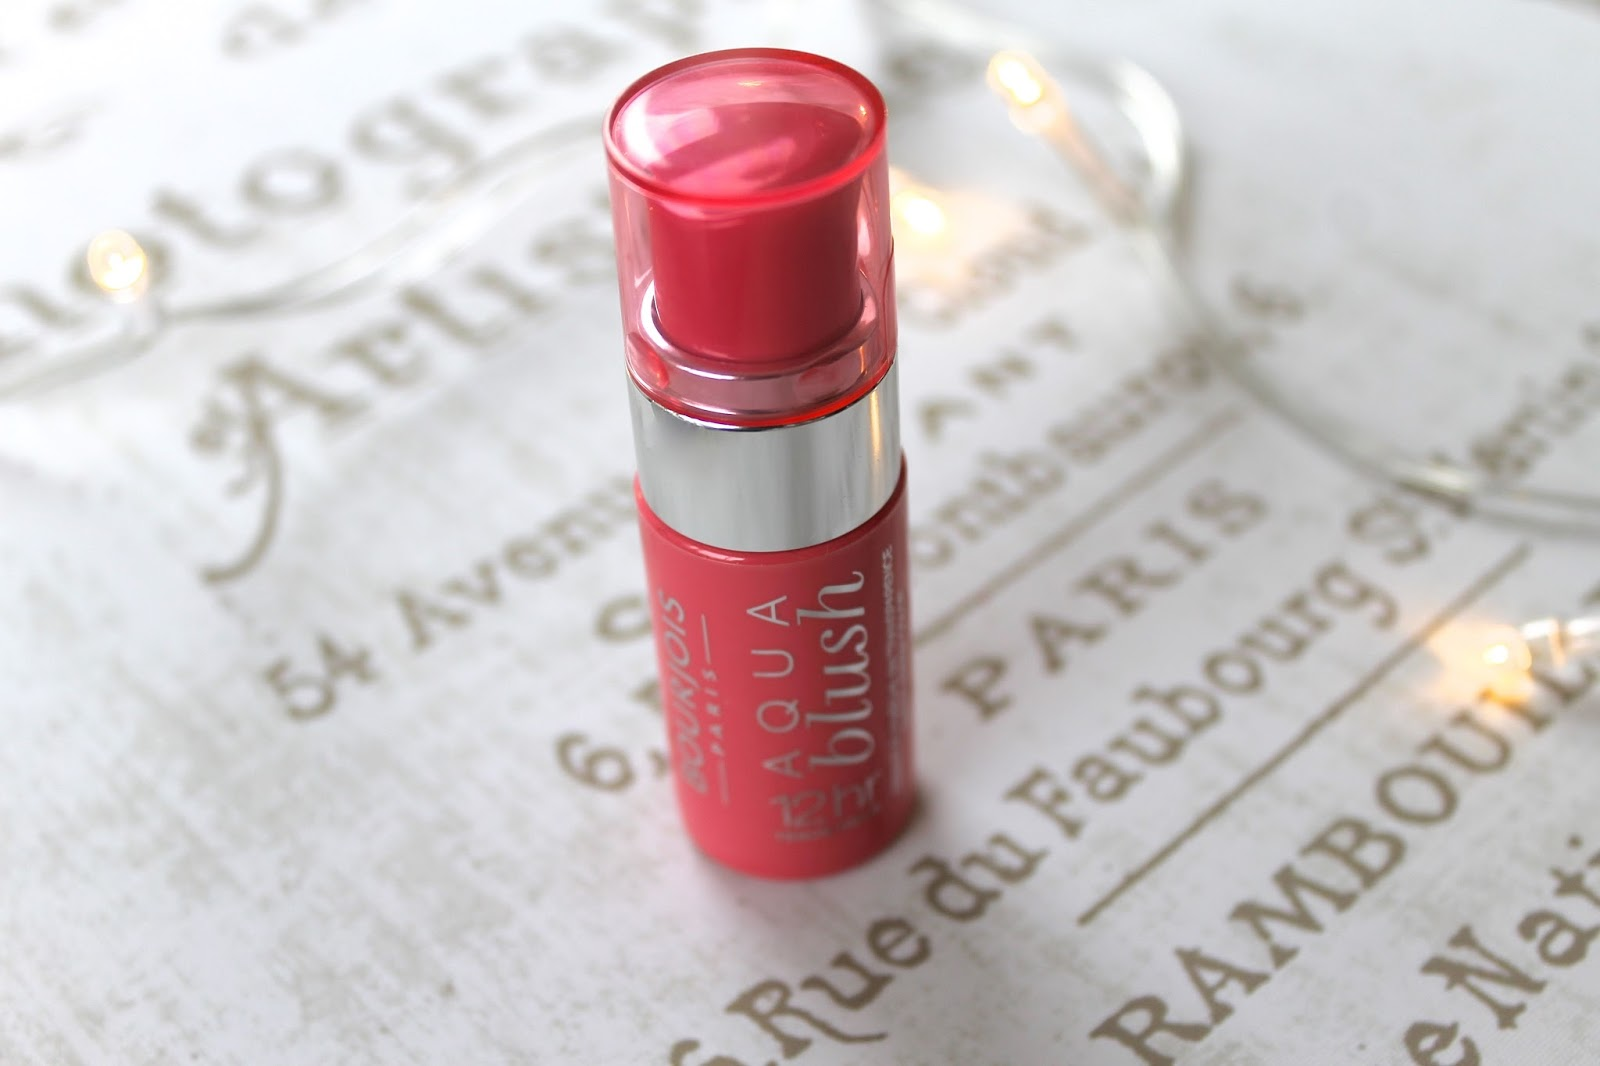 Bourjois aqua blush blog review